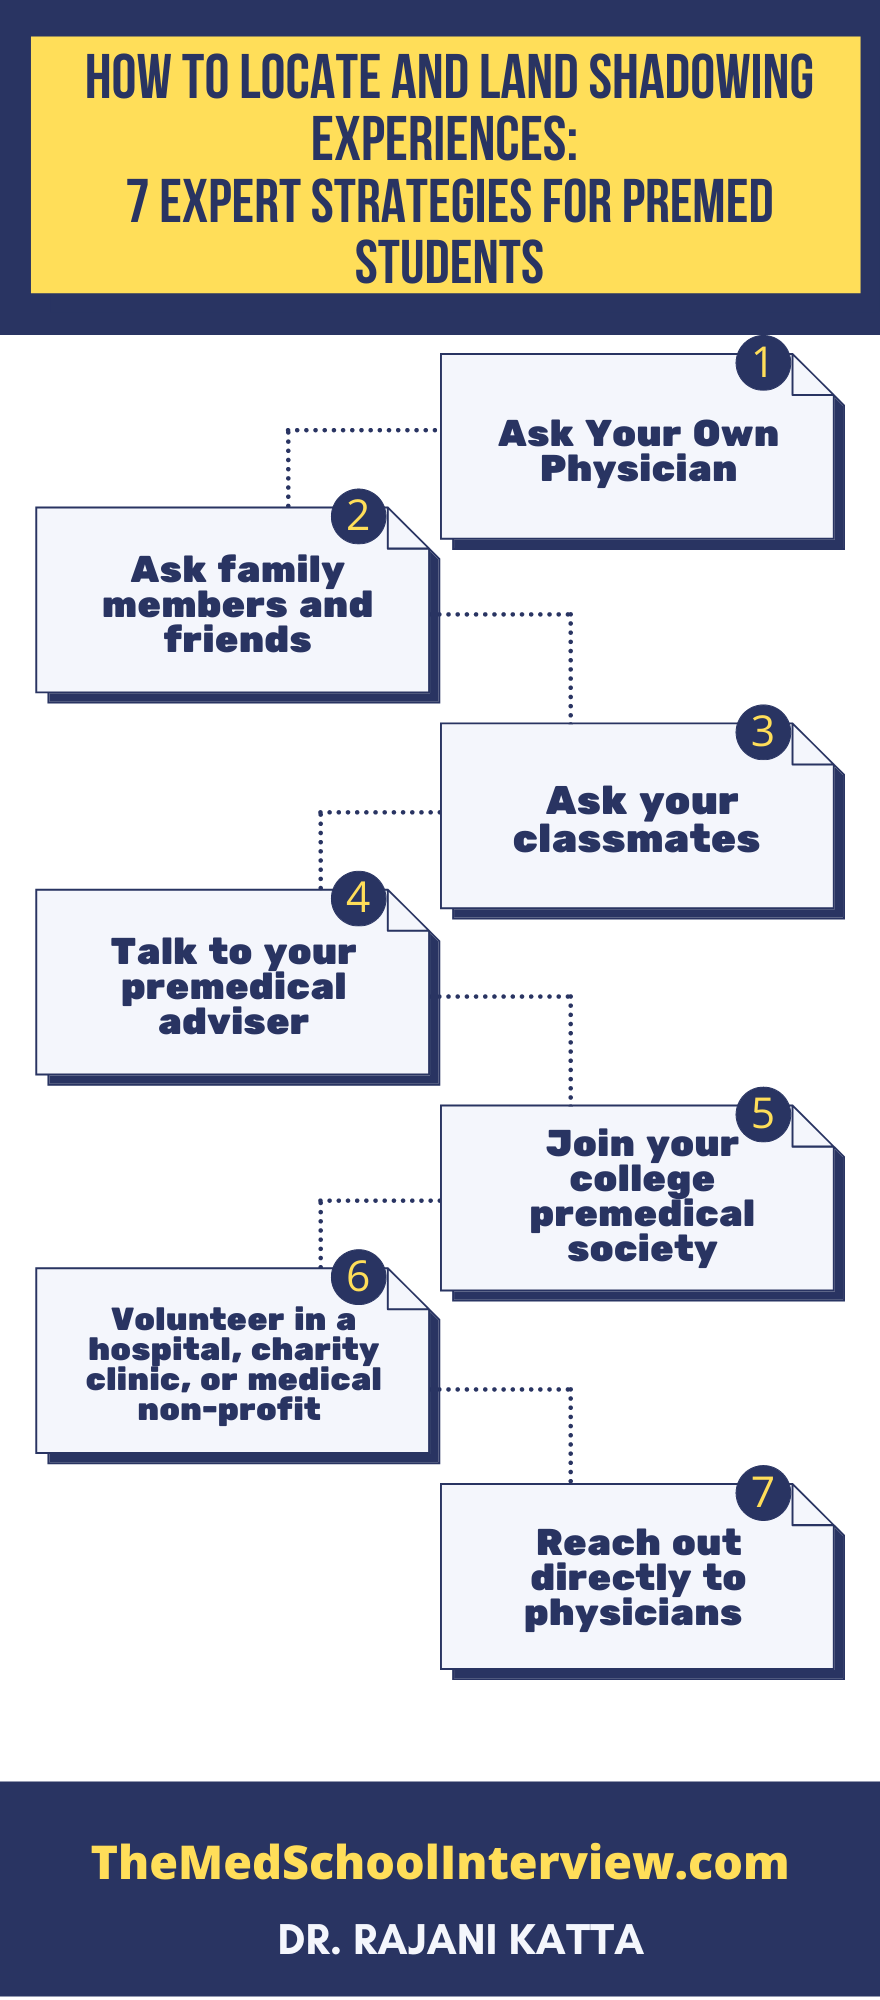 This is an image of an infographic that describes How To Locate and Land Shadowing Experiences: 7 expert strategies for premed students